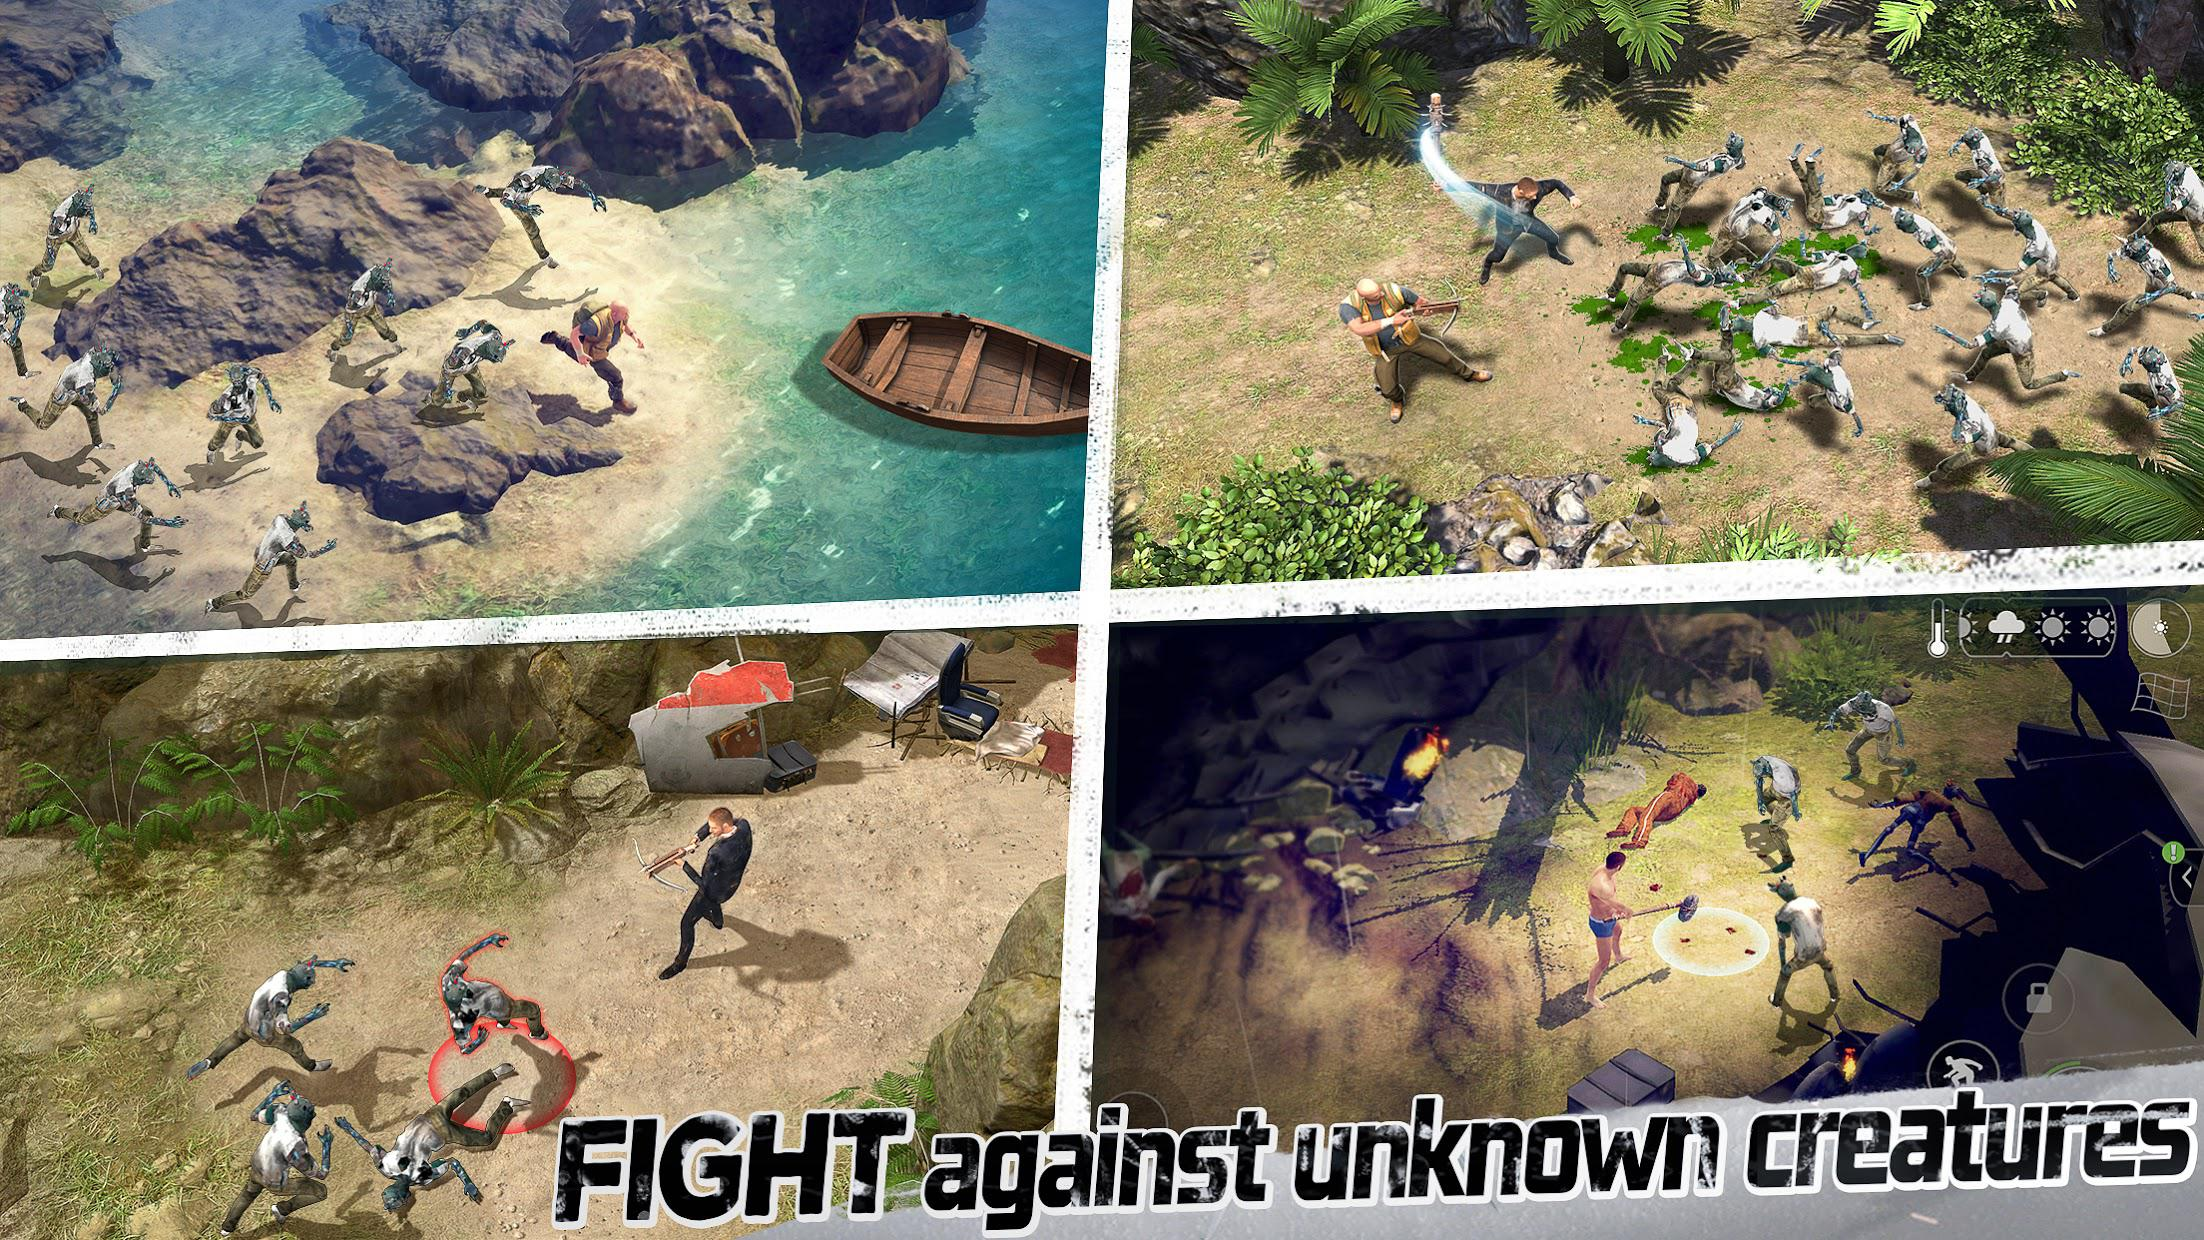 LOST in Blue: Survive the Zombie Islands 游戏截图2